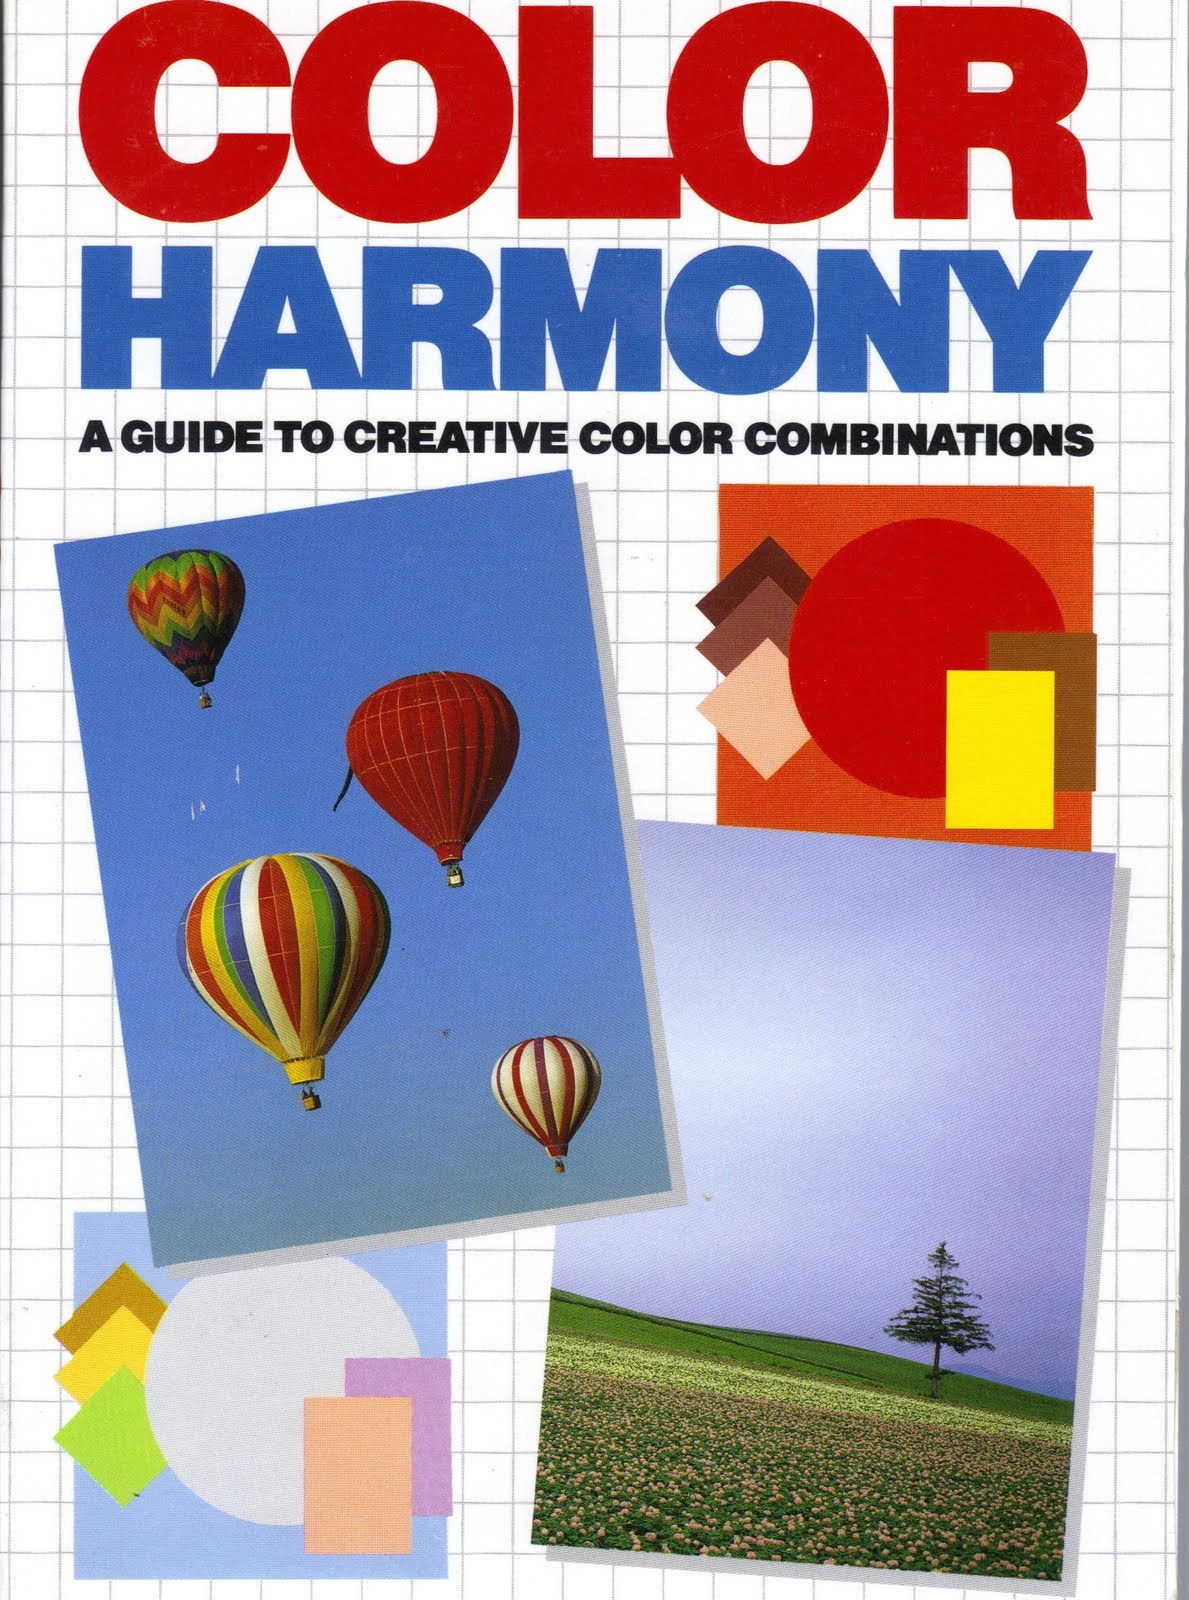 Book for color theory - The Complete Color Harmony Workbook A Workbook And Guide To Creative Color Combinations By Kiki Eldridge Take Along Color Chips A Must Have Reference For